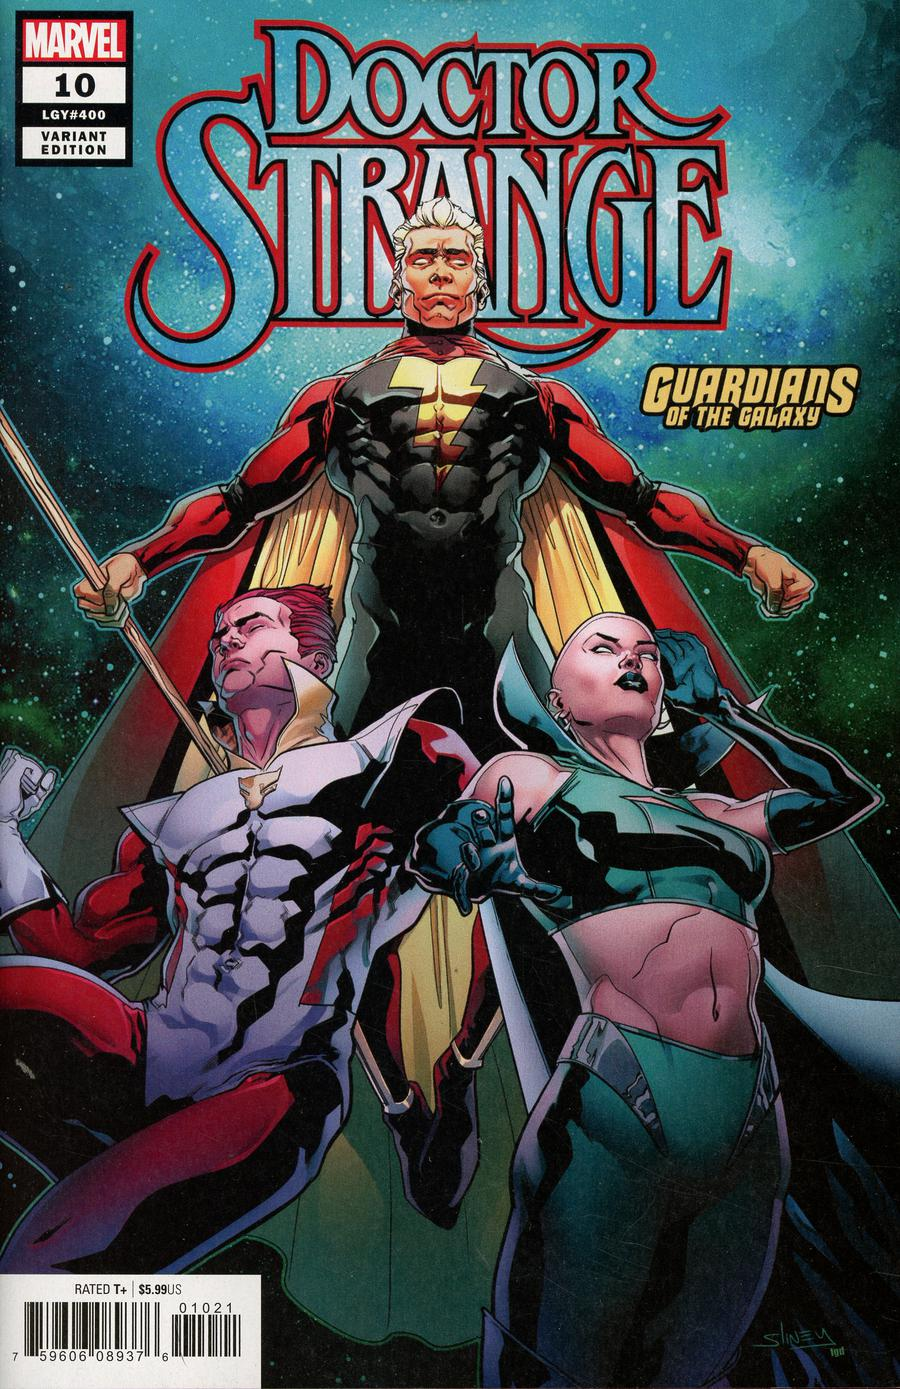 Doctor Strange Vol 5 #10 Cover B Variant Will Sliney Guardians Of The Galaxy Cover